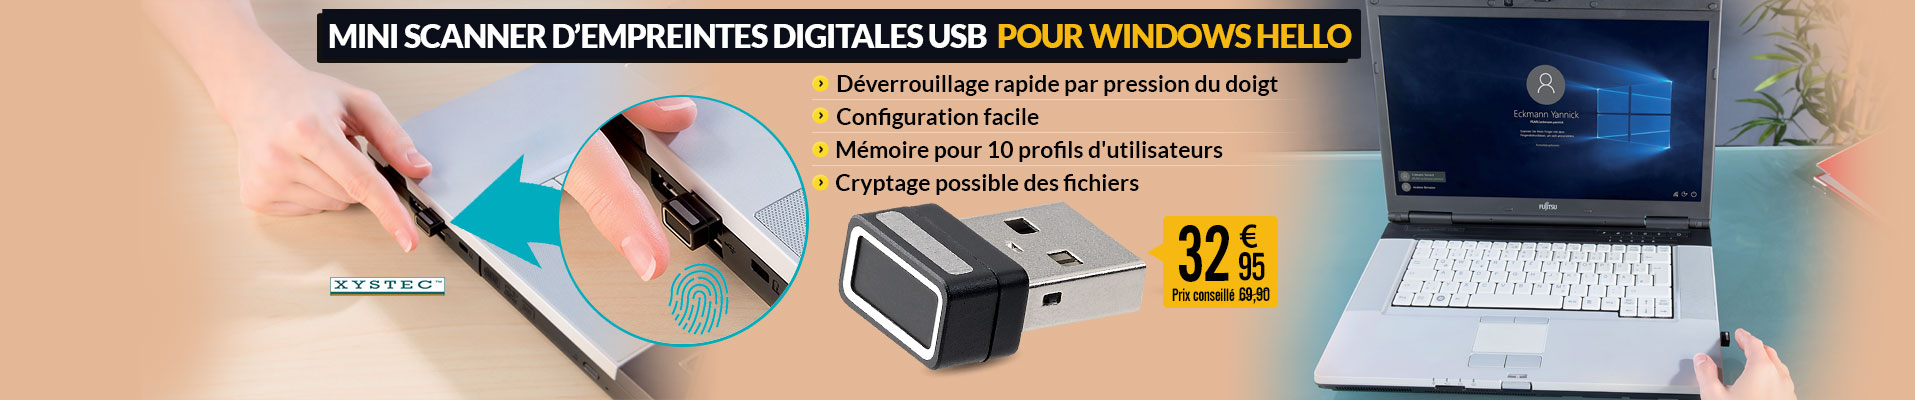 Mini scanner d'empreintes digitales USB pour Windows Hello - PX9532